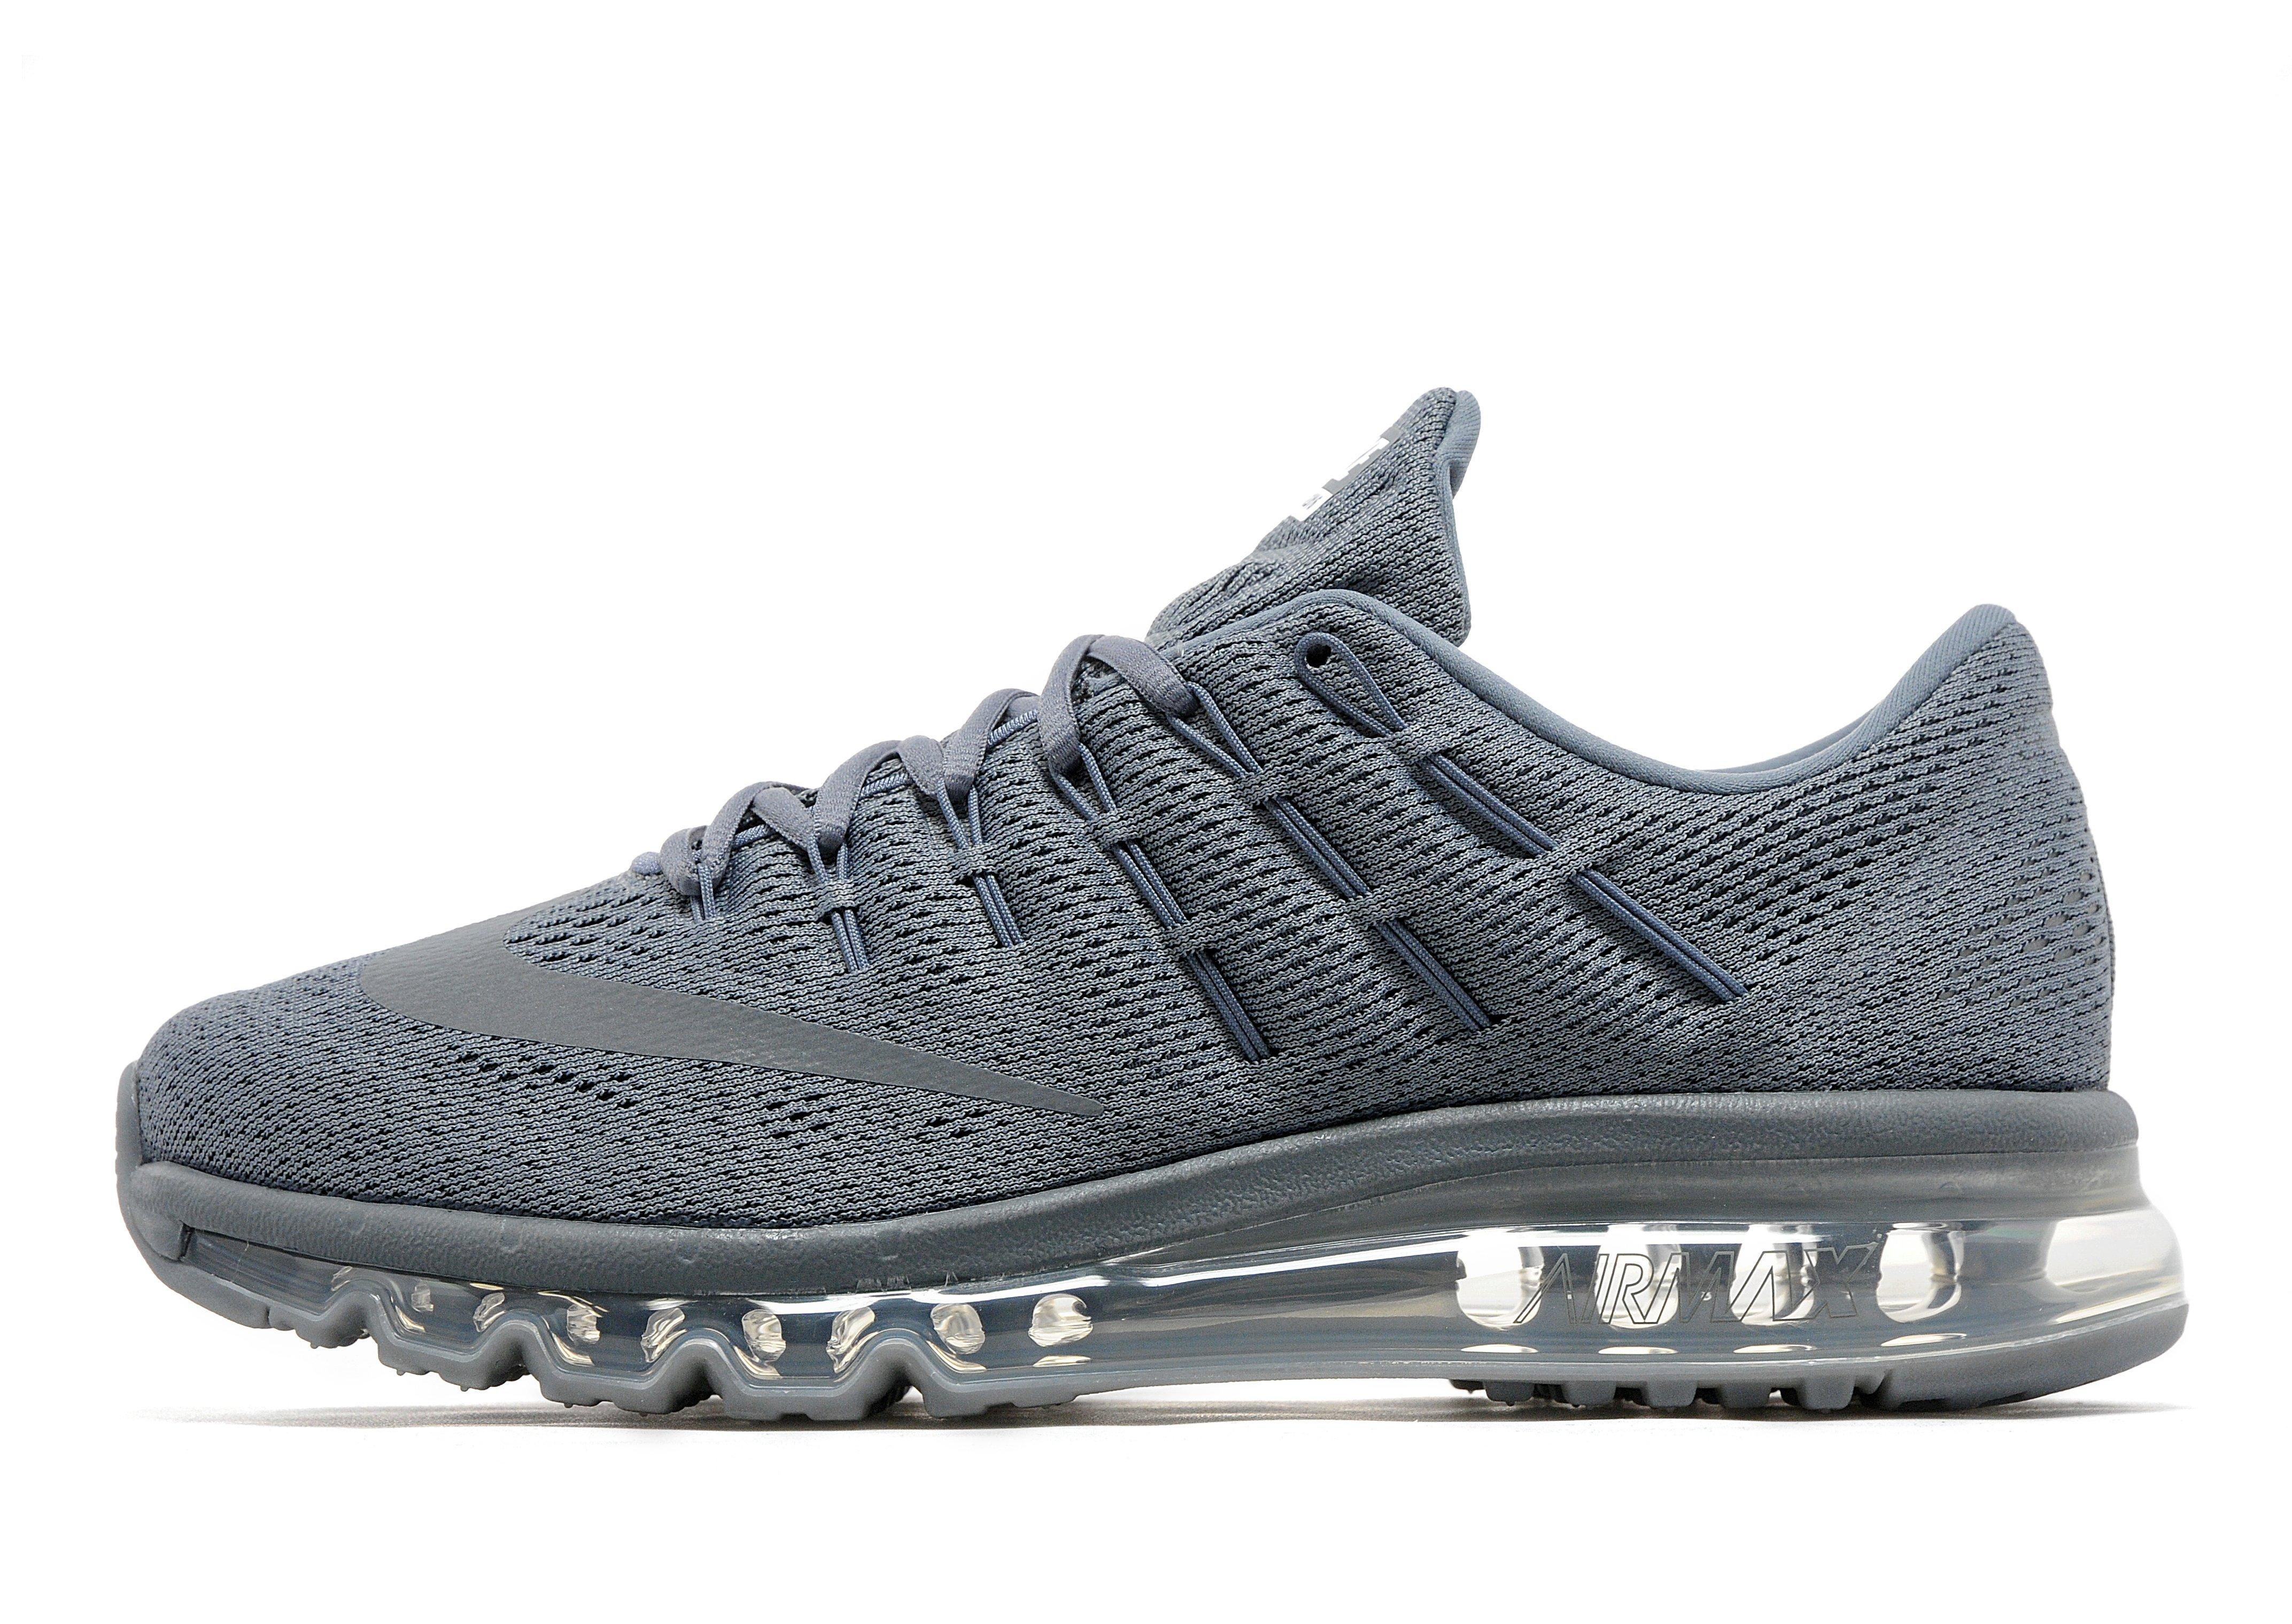 Nike Women's Air Max 2016 Running Shoes Shoes